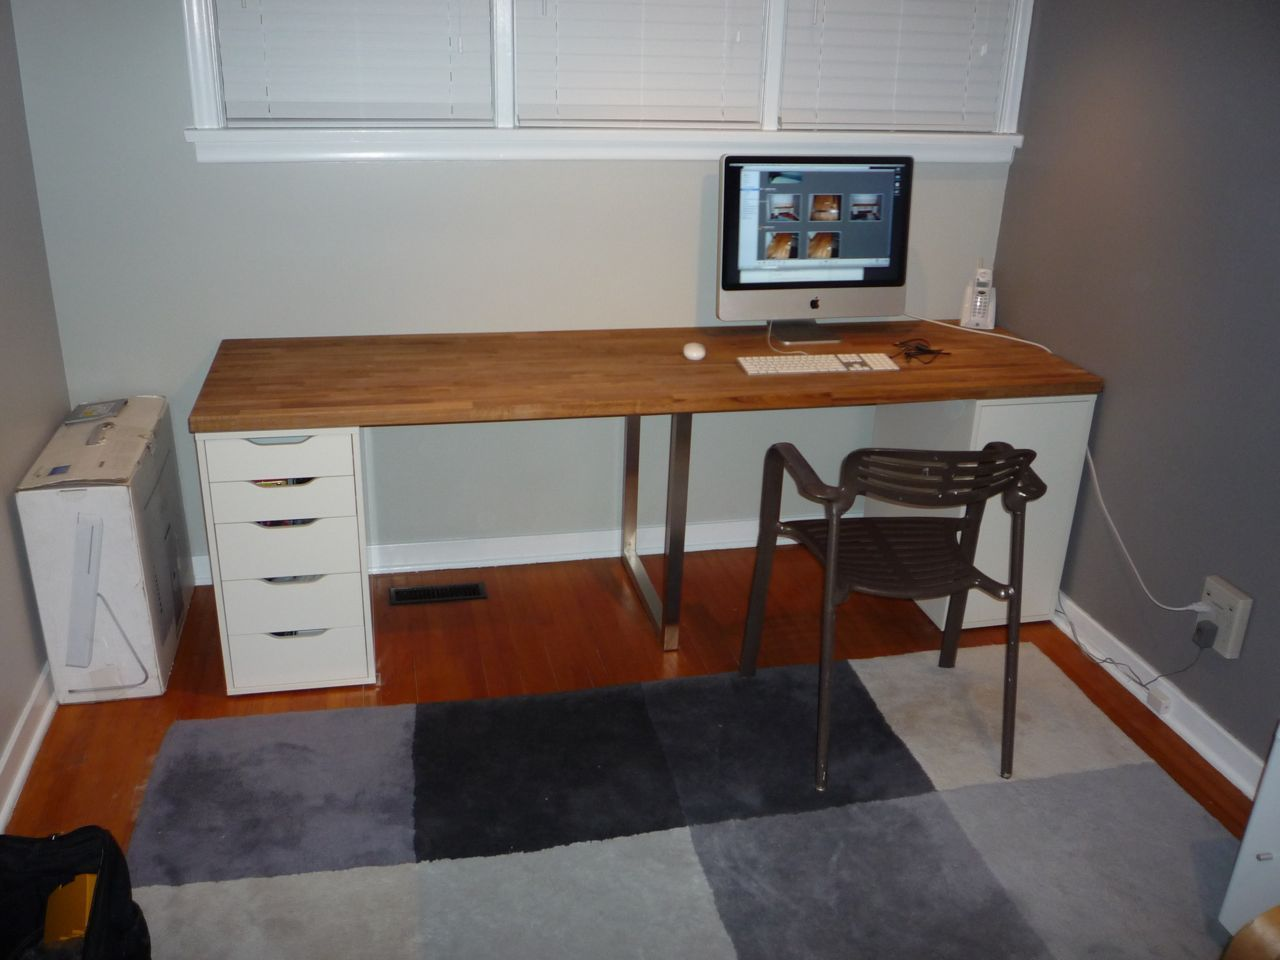 Giant Ikea Numerar Desk Ikea Wooden Desk Ikea Workspace Ikea Desk Hack